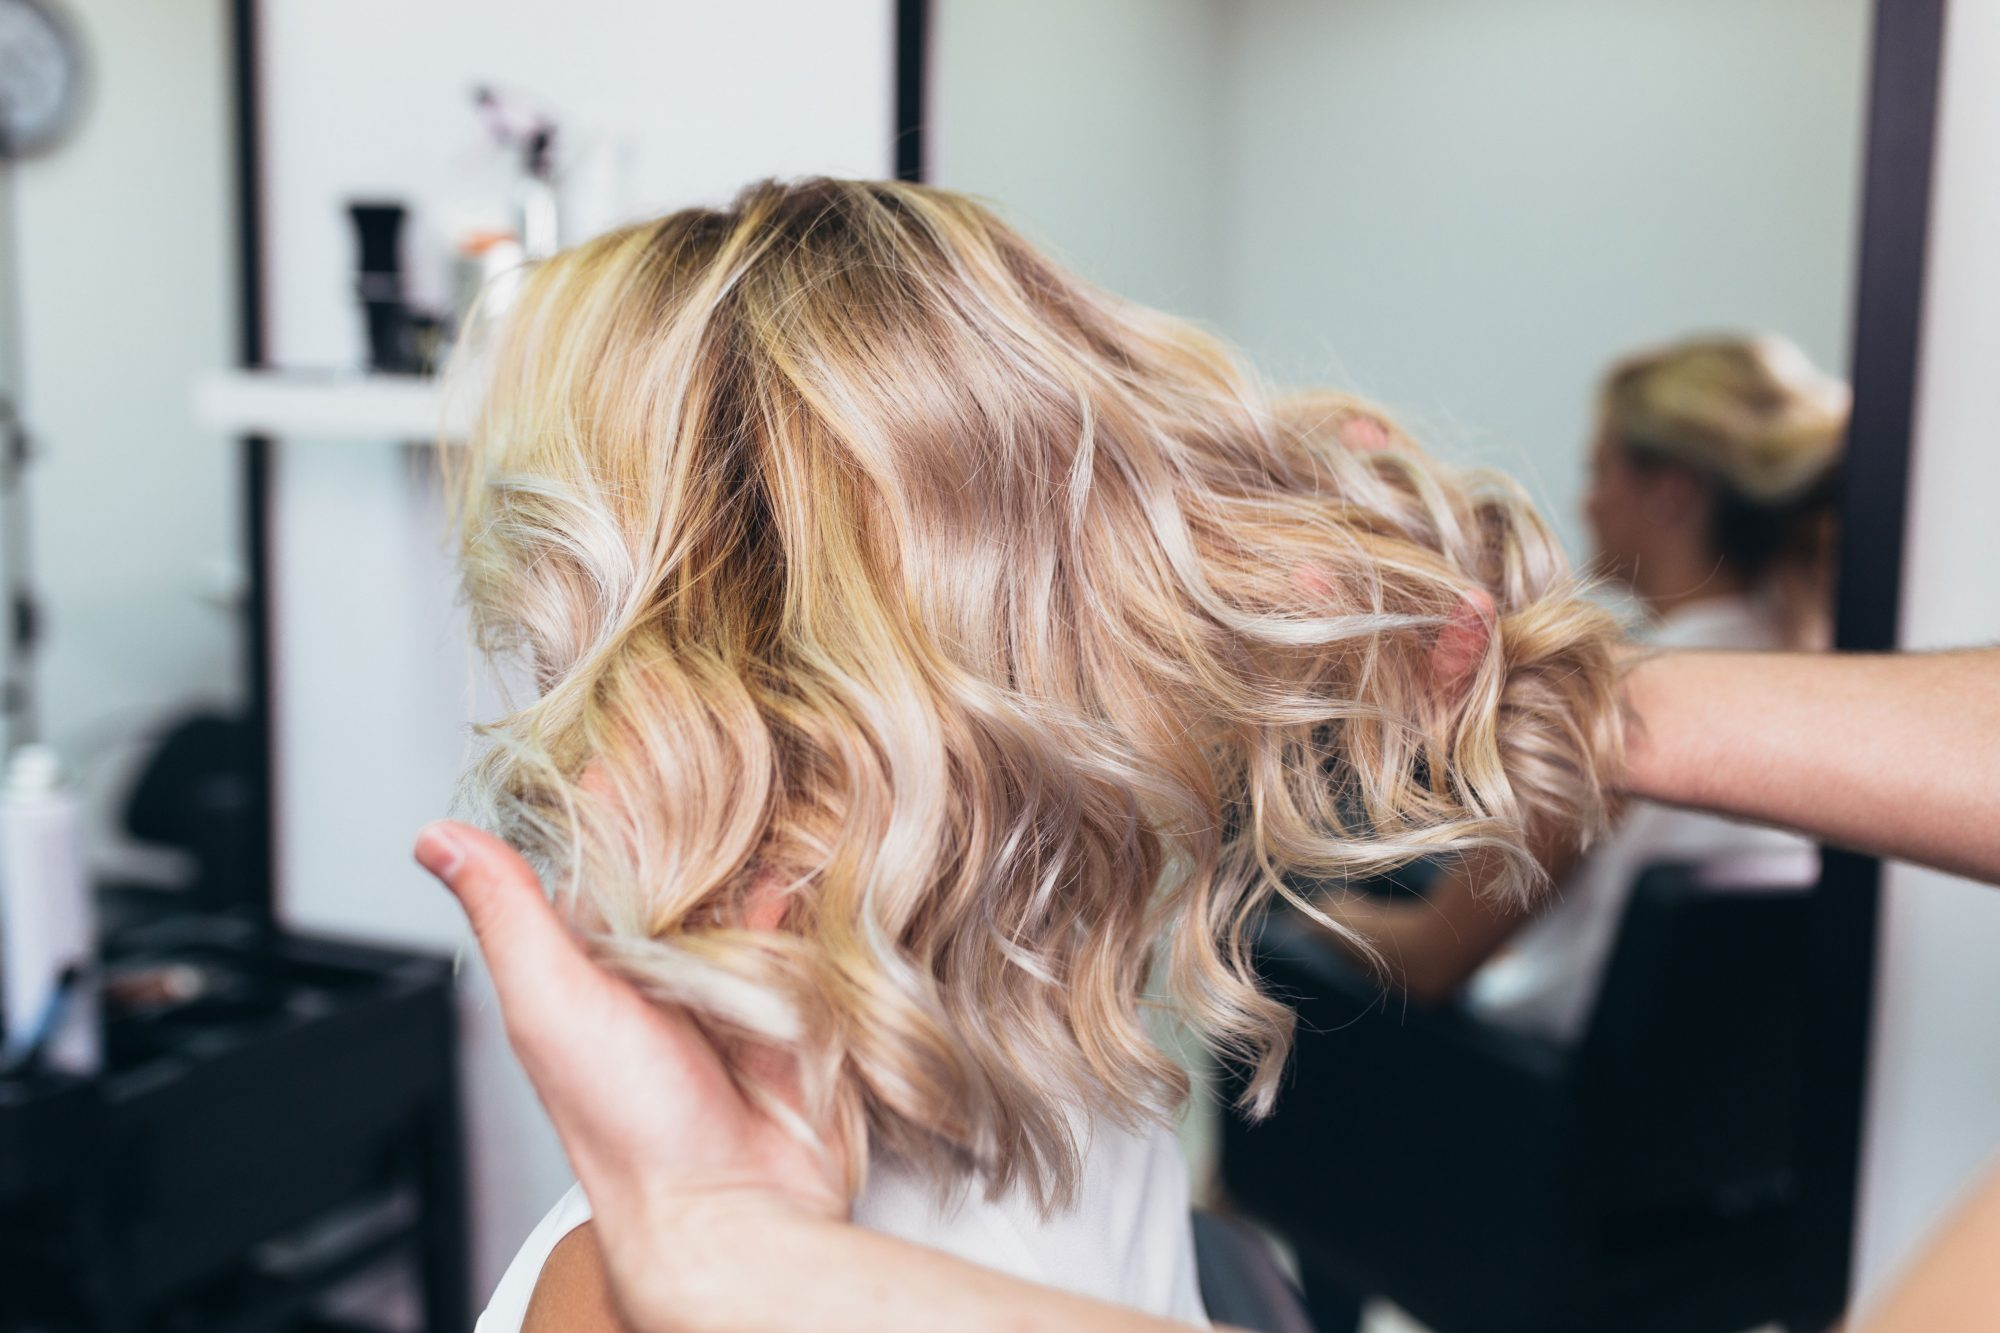 Short Blonde Hair with Waves